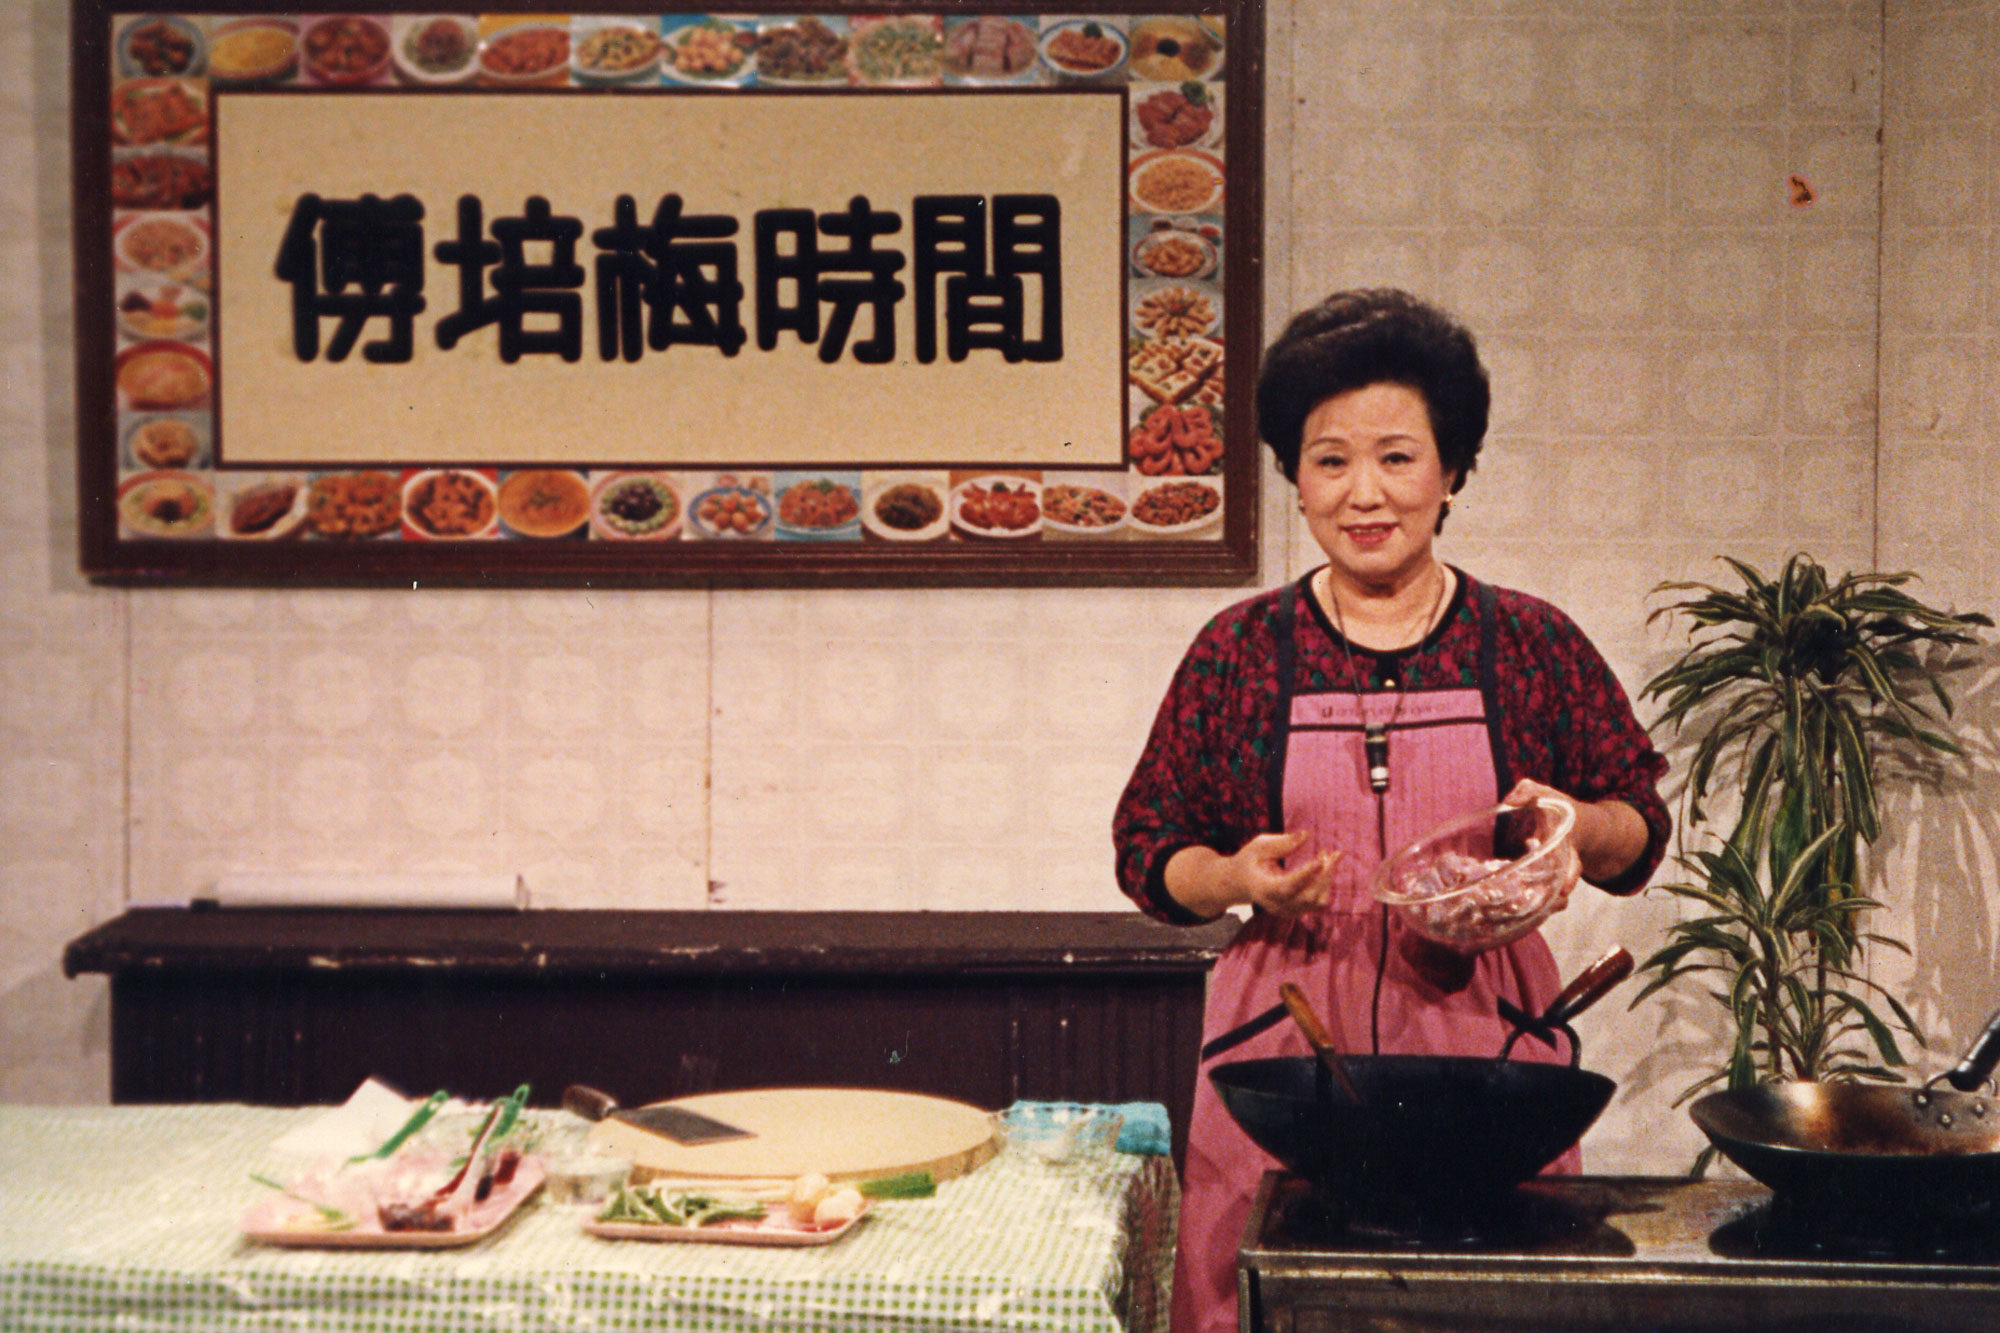 Article2-Fu-Pei-mei-Taiwanese-Chef-Chinese-Cooking-Cookbooks